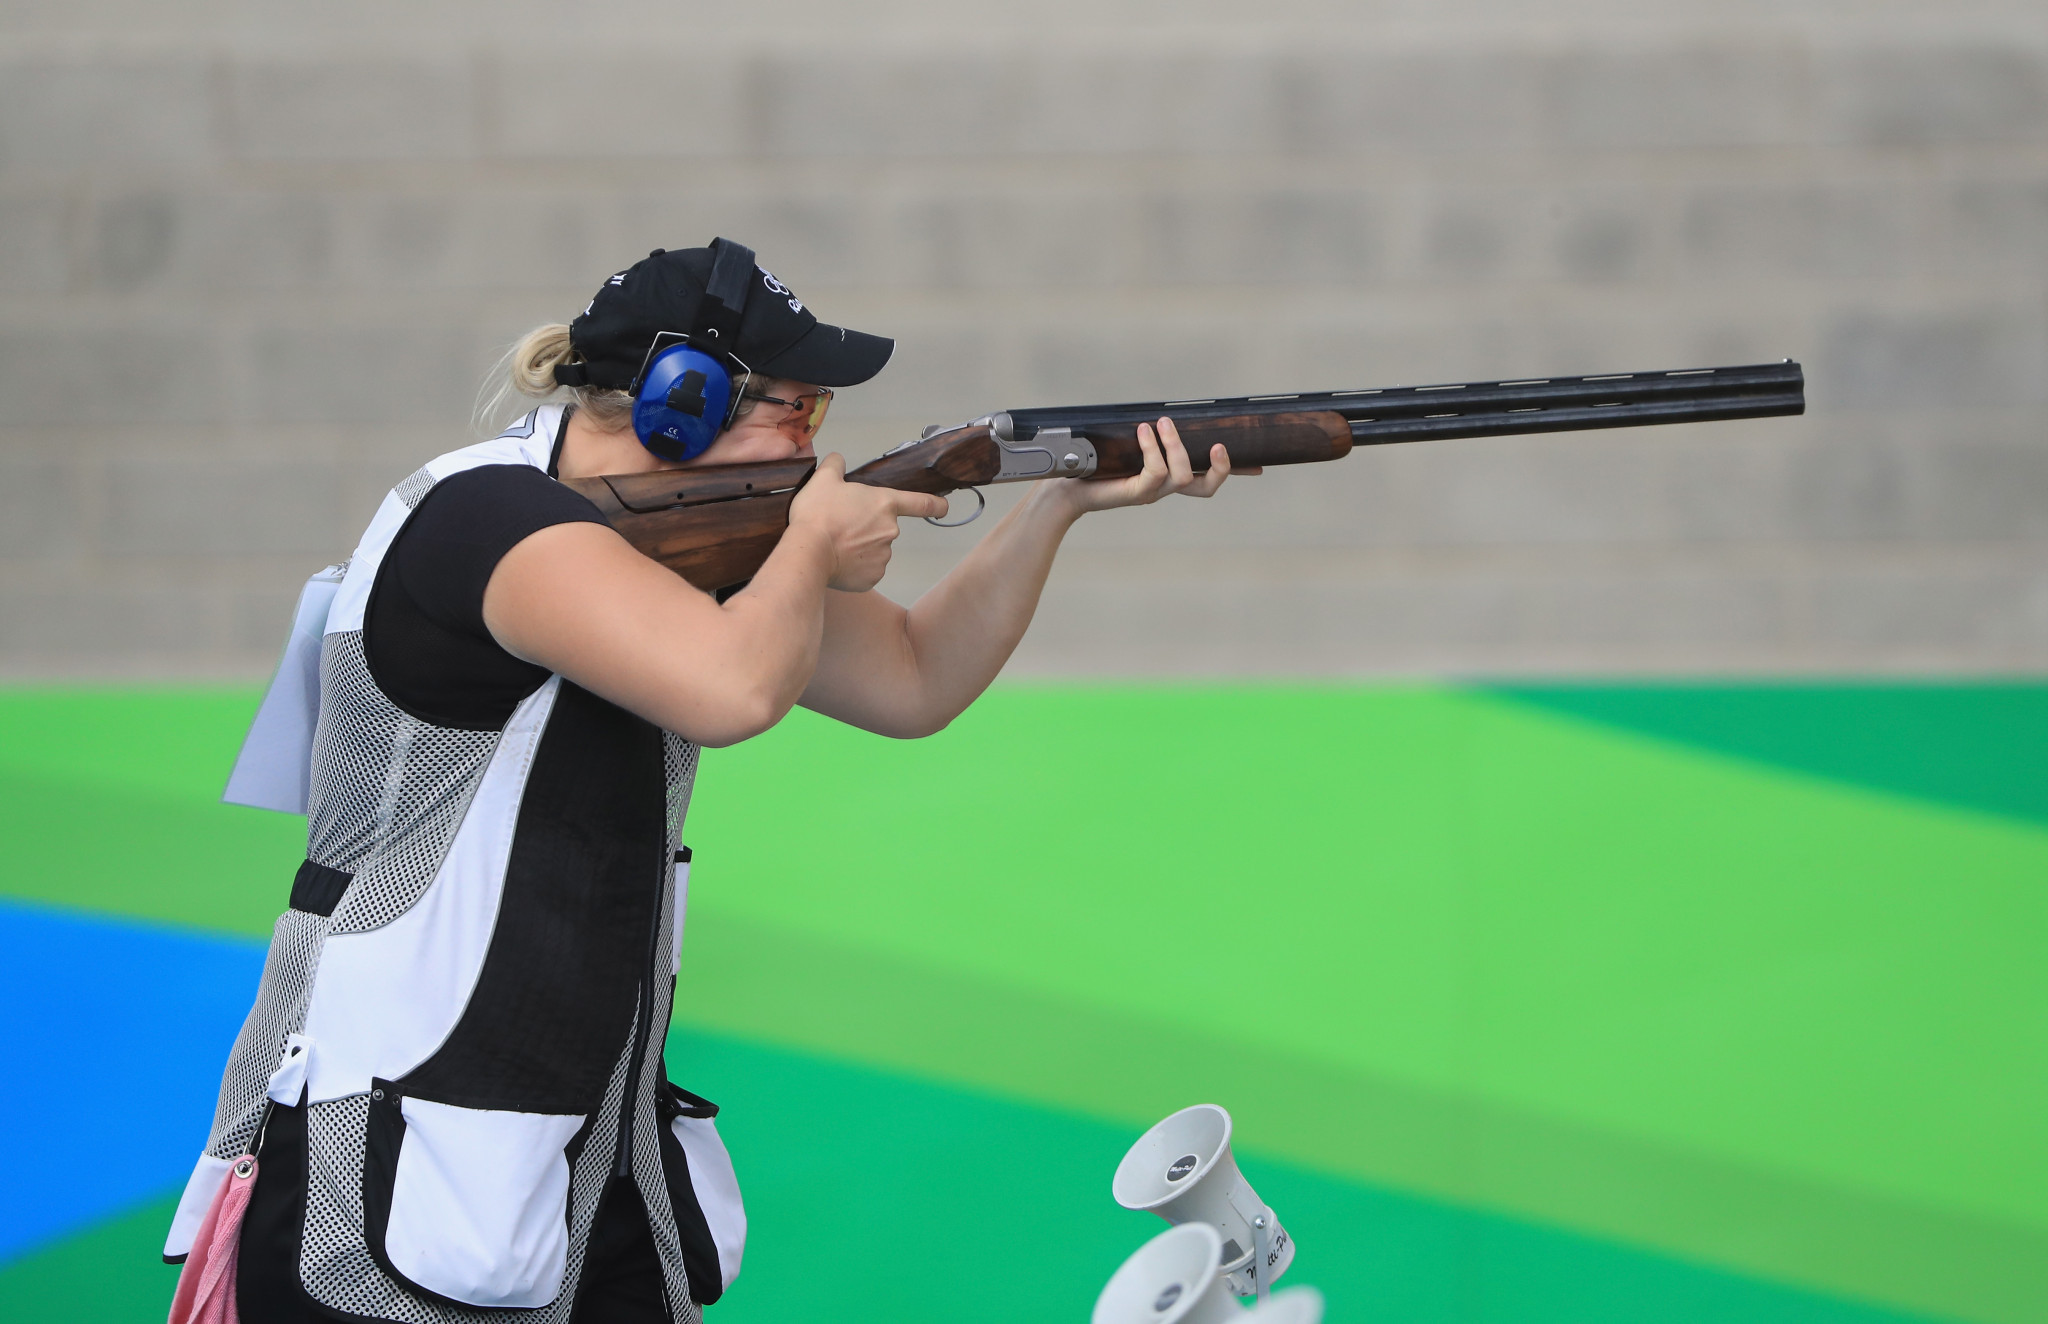 Rio 2016 Olympic silver medallist Natalie Rooney will be representing New Zealand in the women's trap ©Getty Images